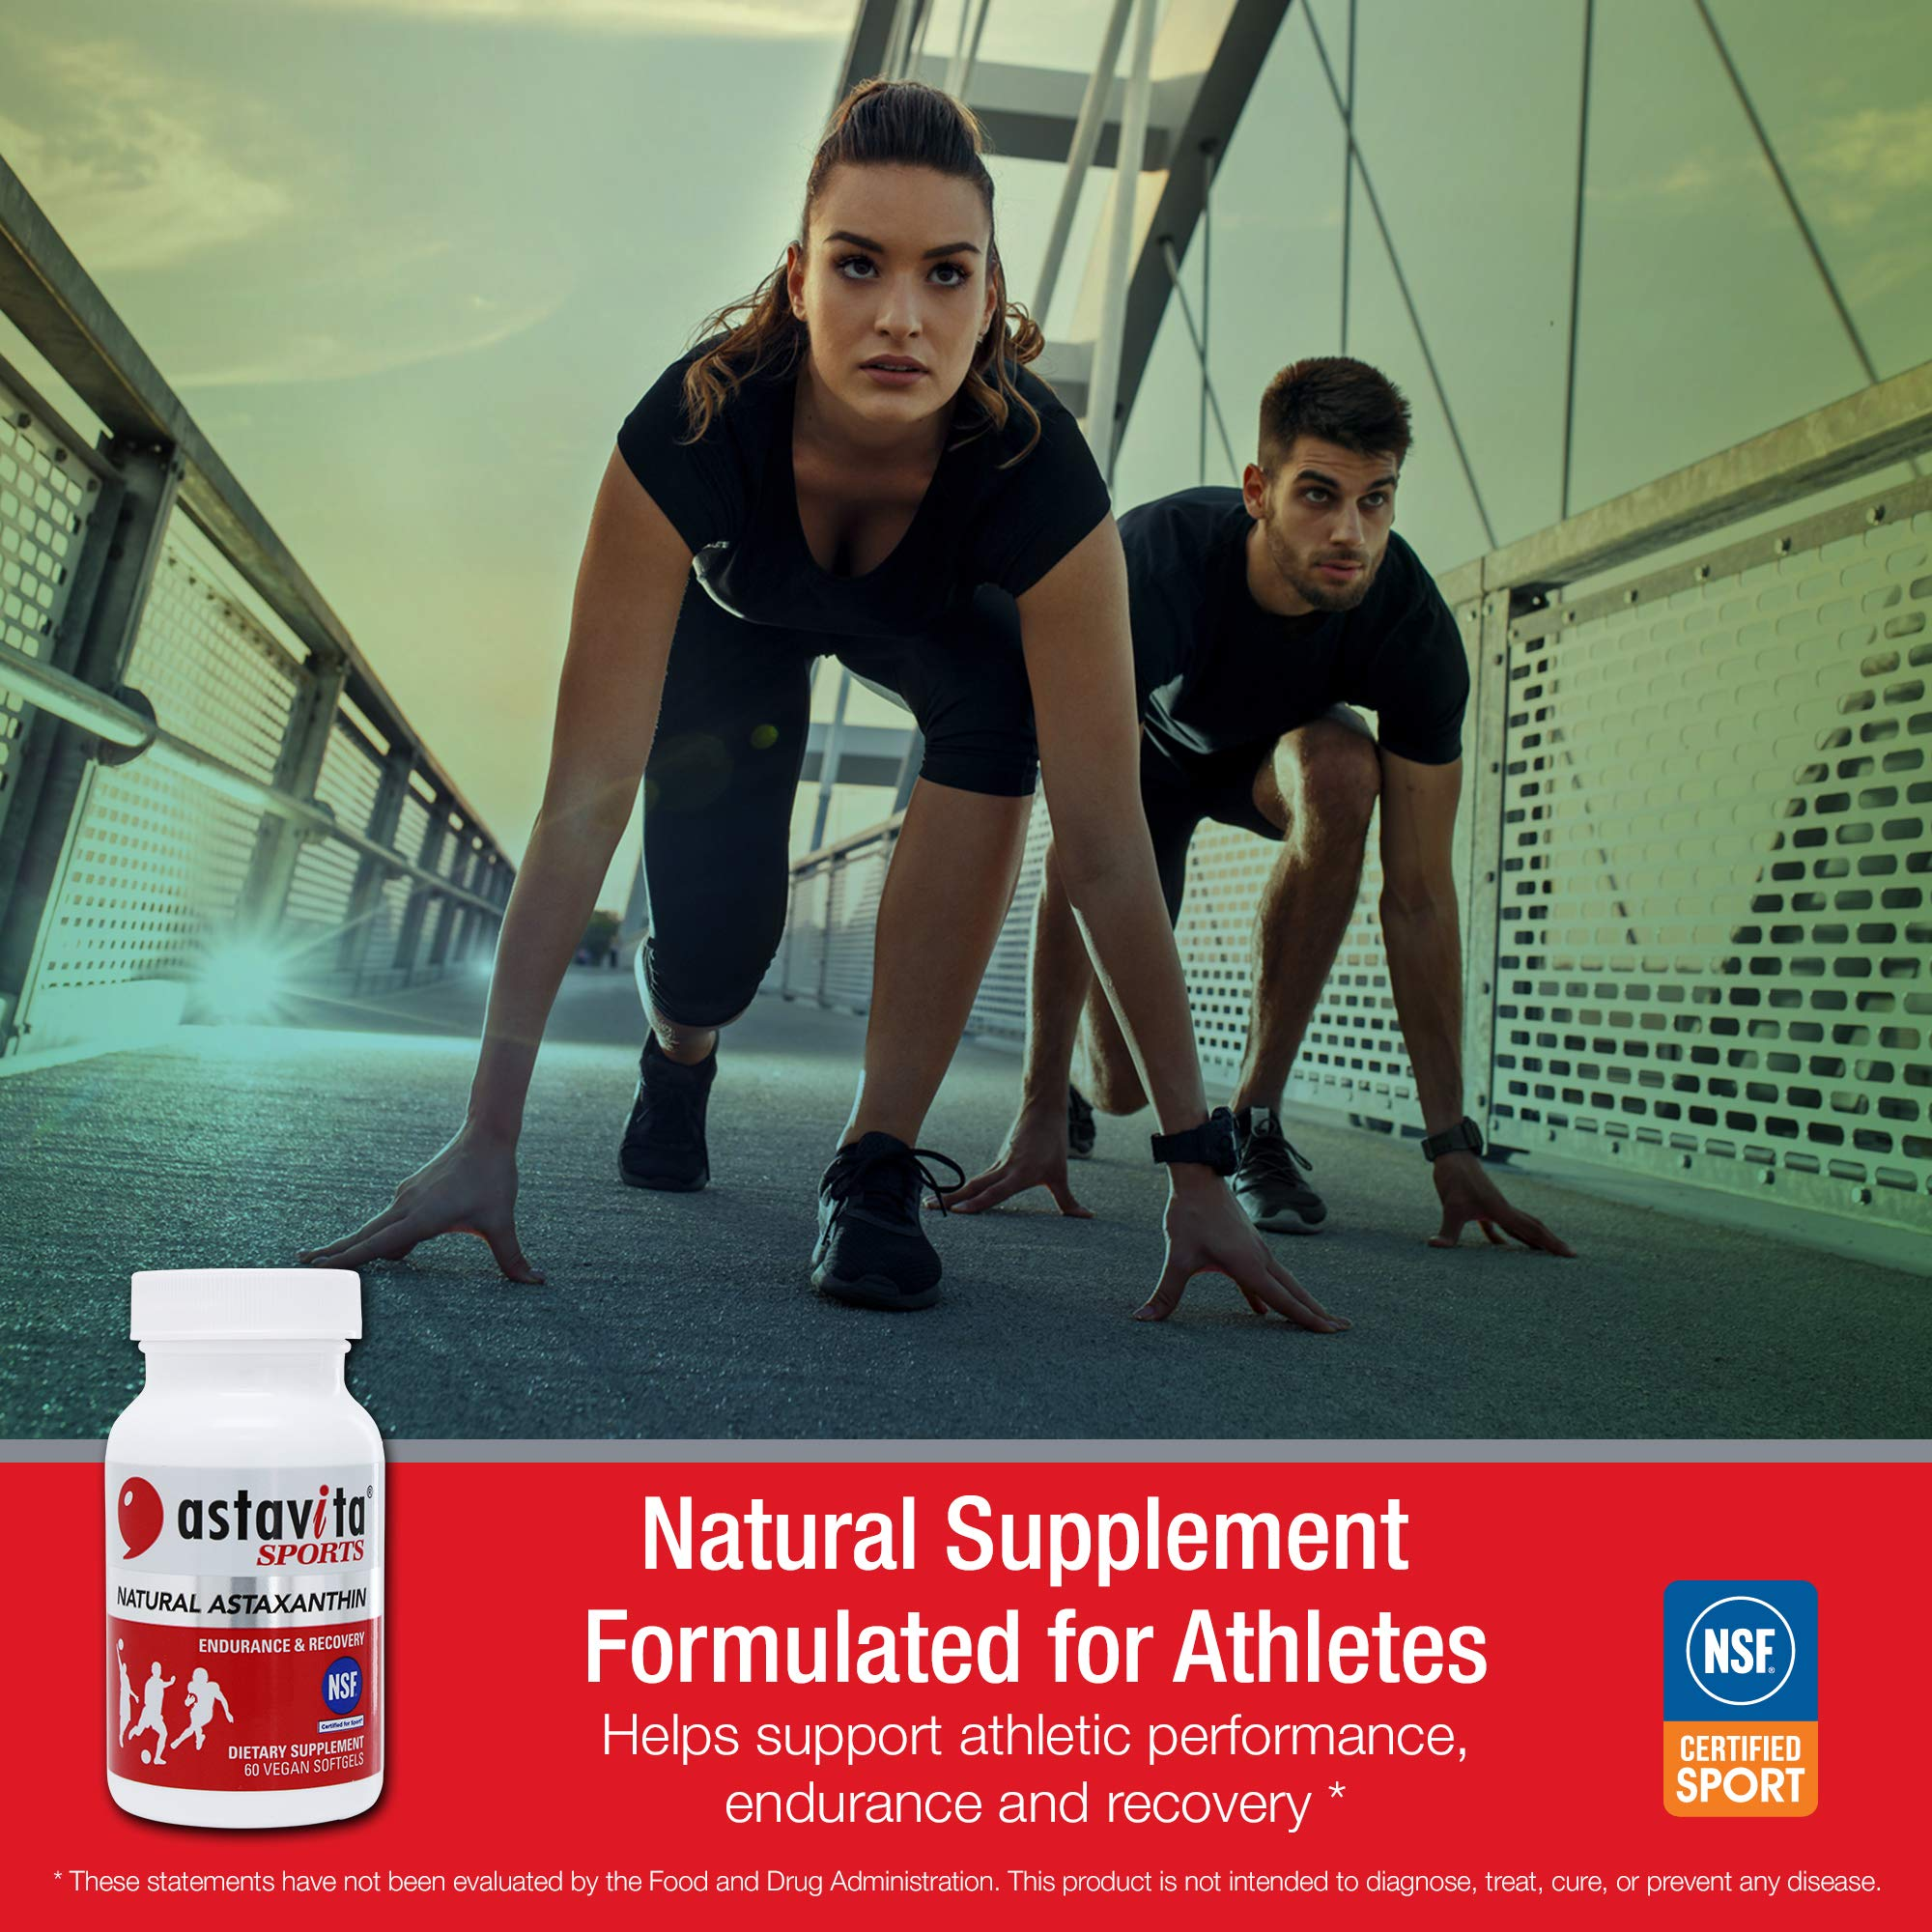 Astavita Sports Natural Astaxanthin Supplement for Endurance and Recovery, NSF-Certified for Sport (Non-GMO Project Verified and Gluten Free, Contains 60 Vegan Softgels)